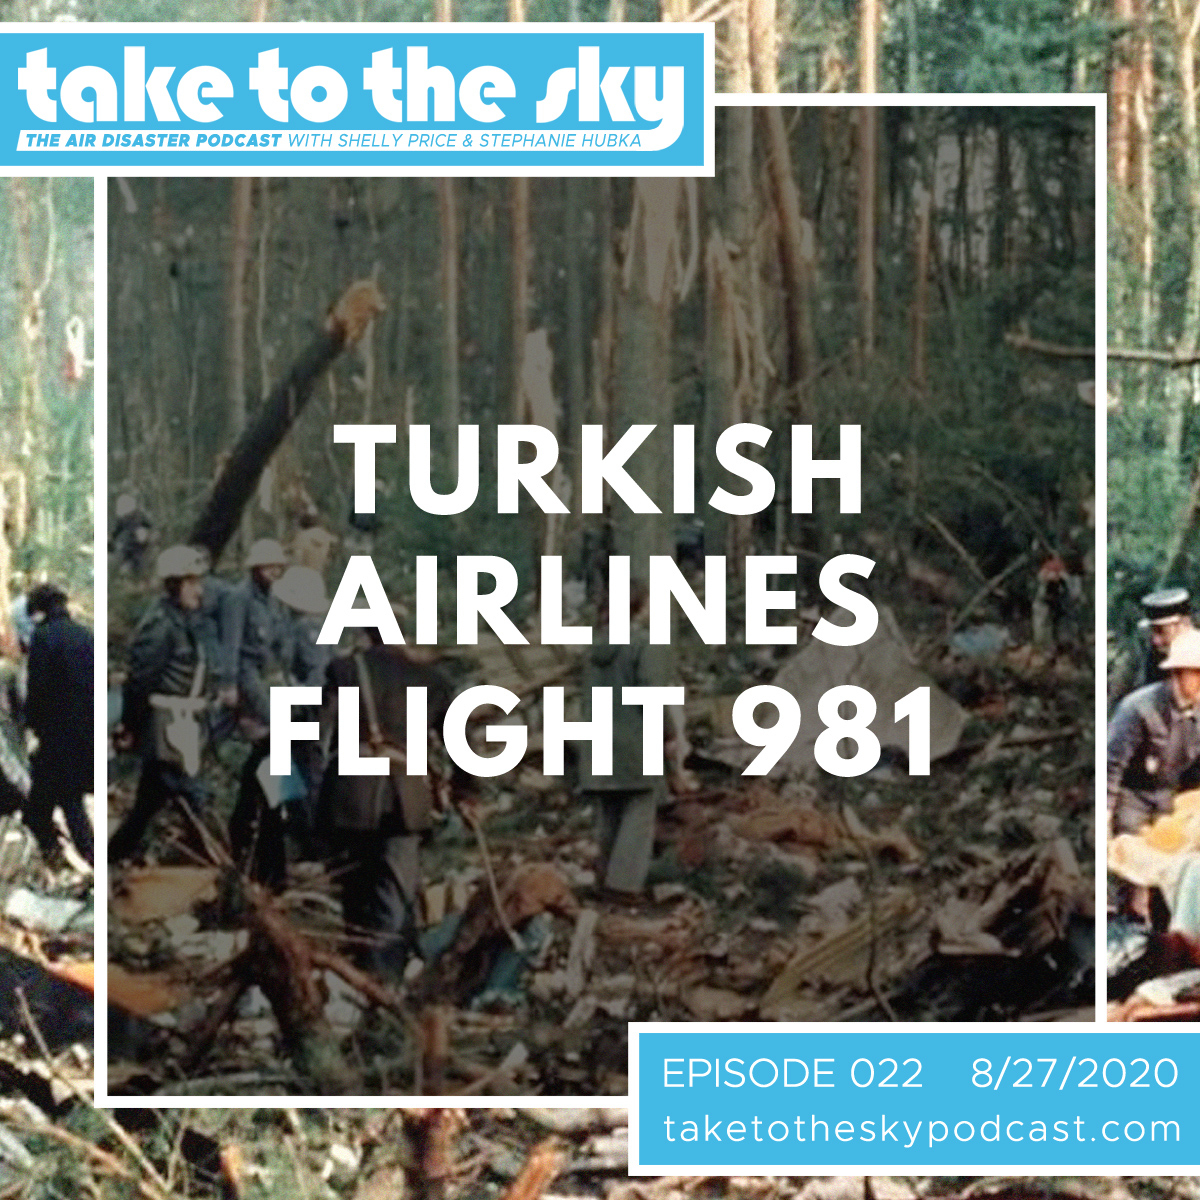 Take to the Sky Episode 022: Turkish Airlines Flight 981